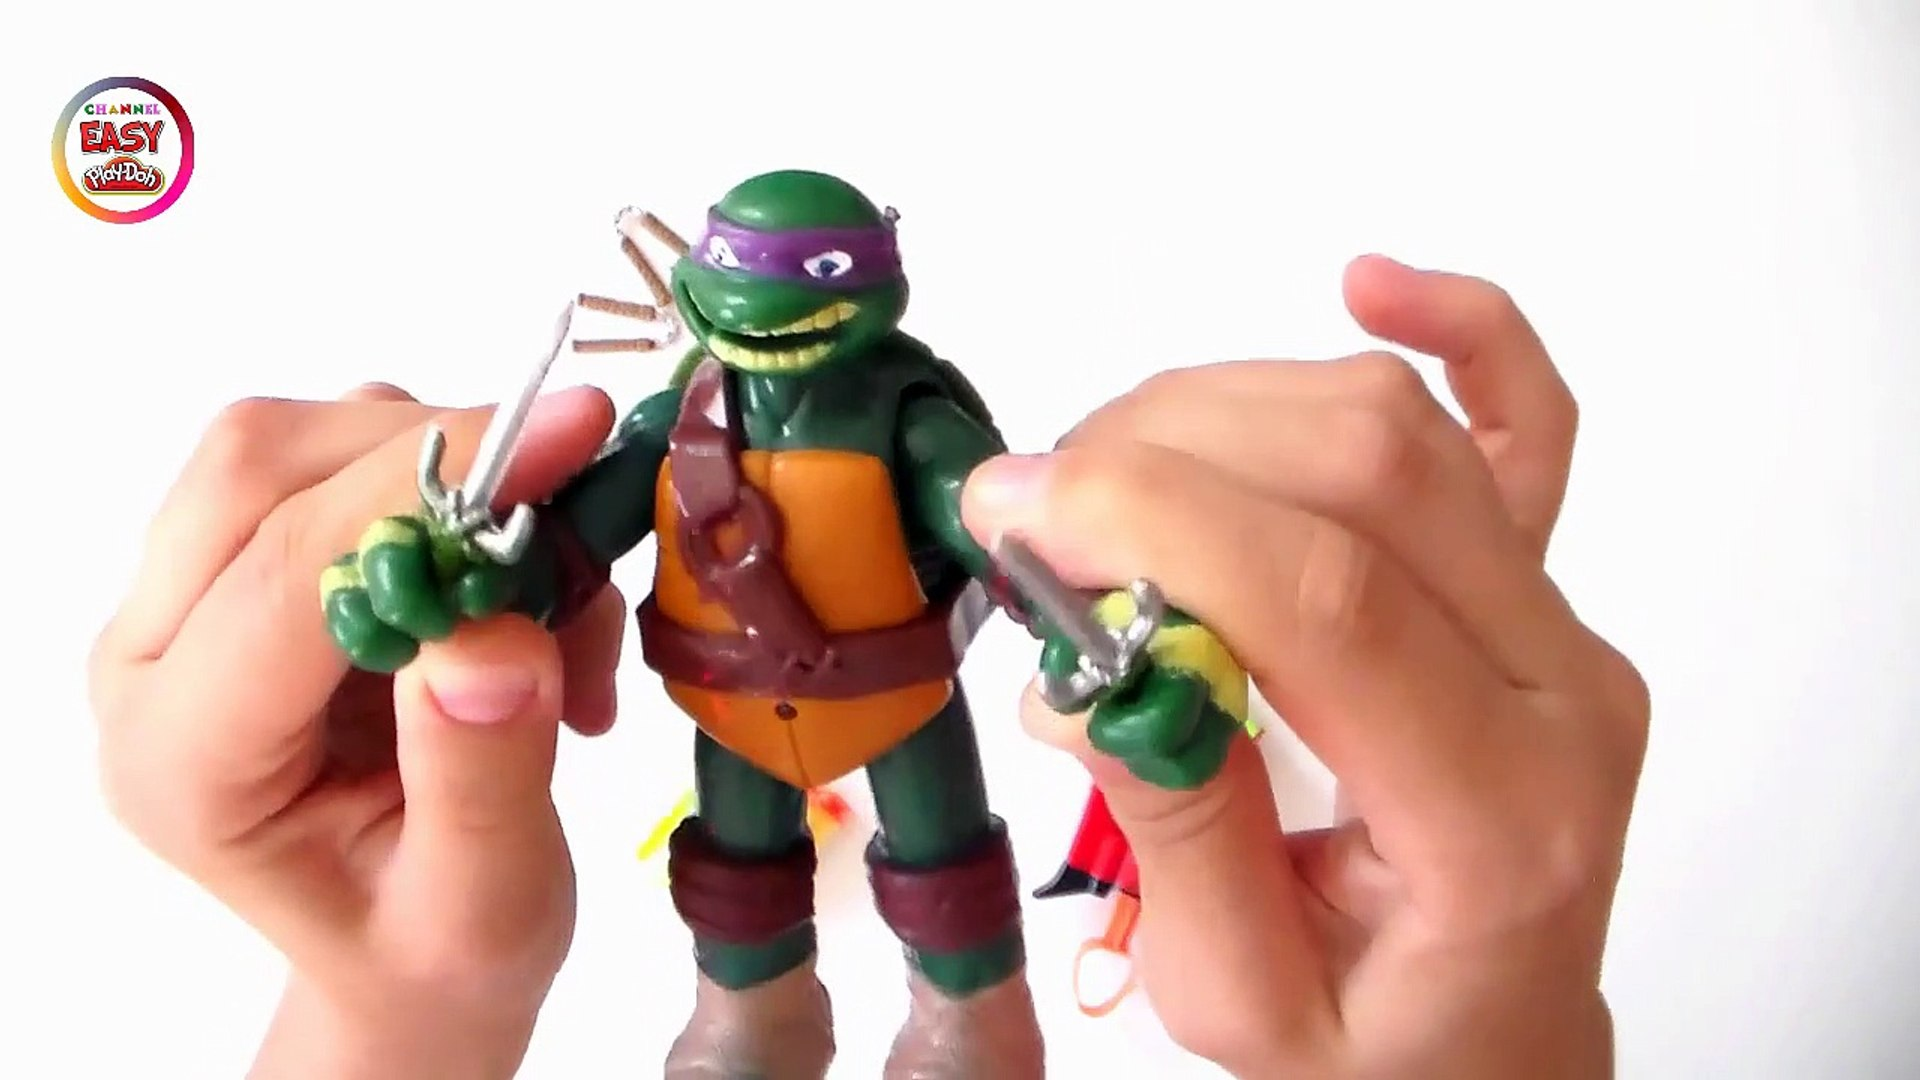 Justice Fighters Toy - Donatello - Teenage Mutan  Play Doh Channel-B